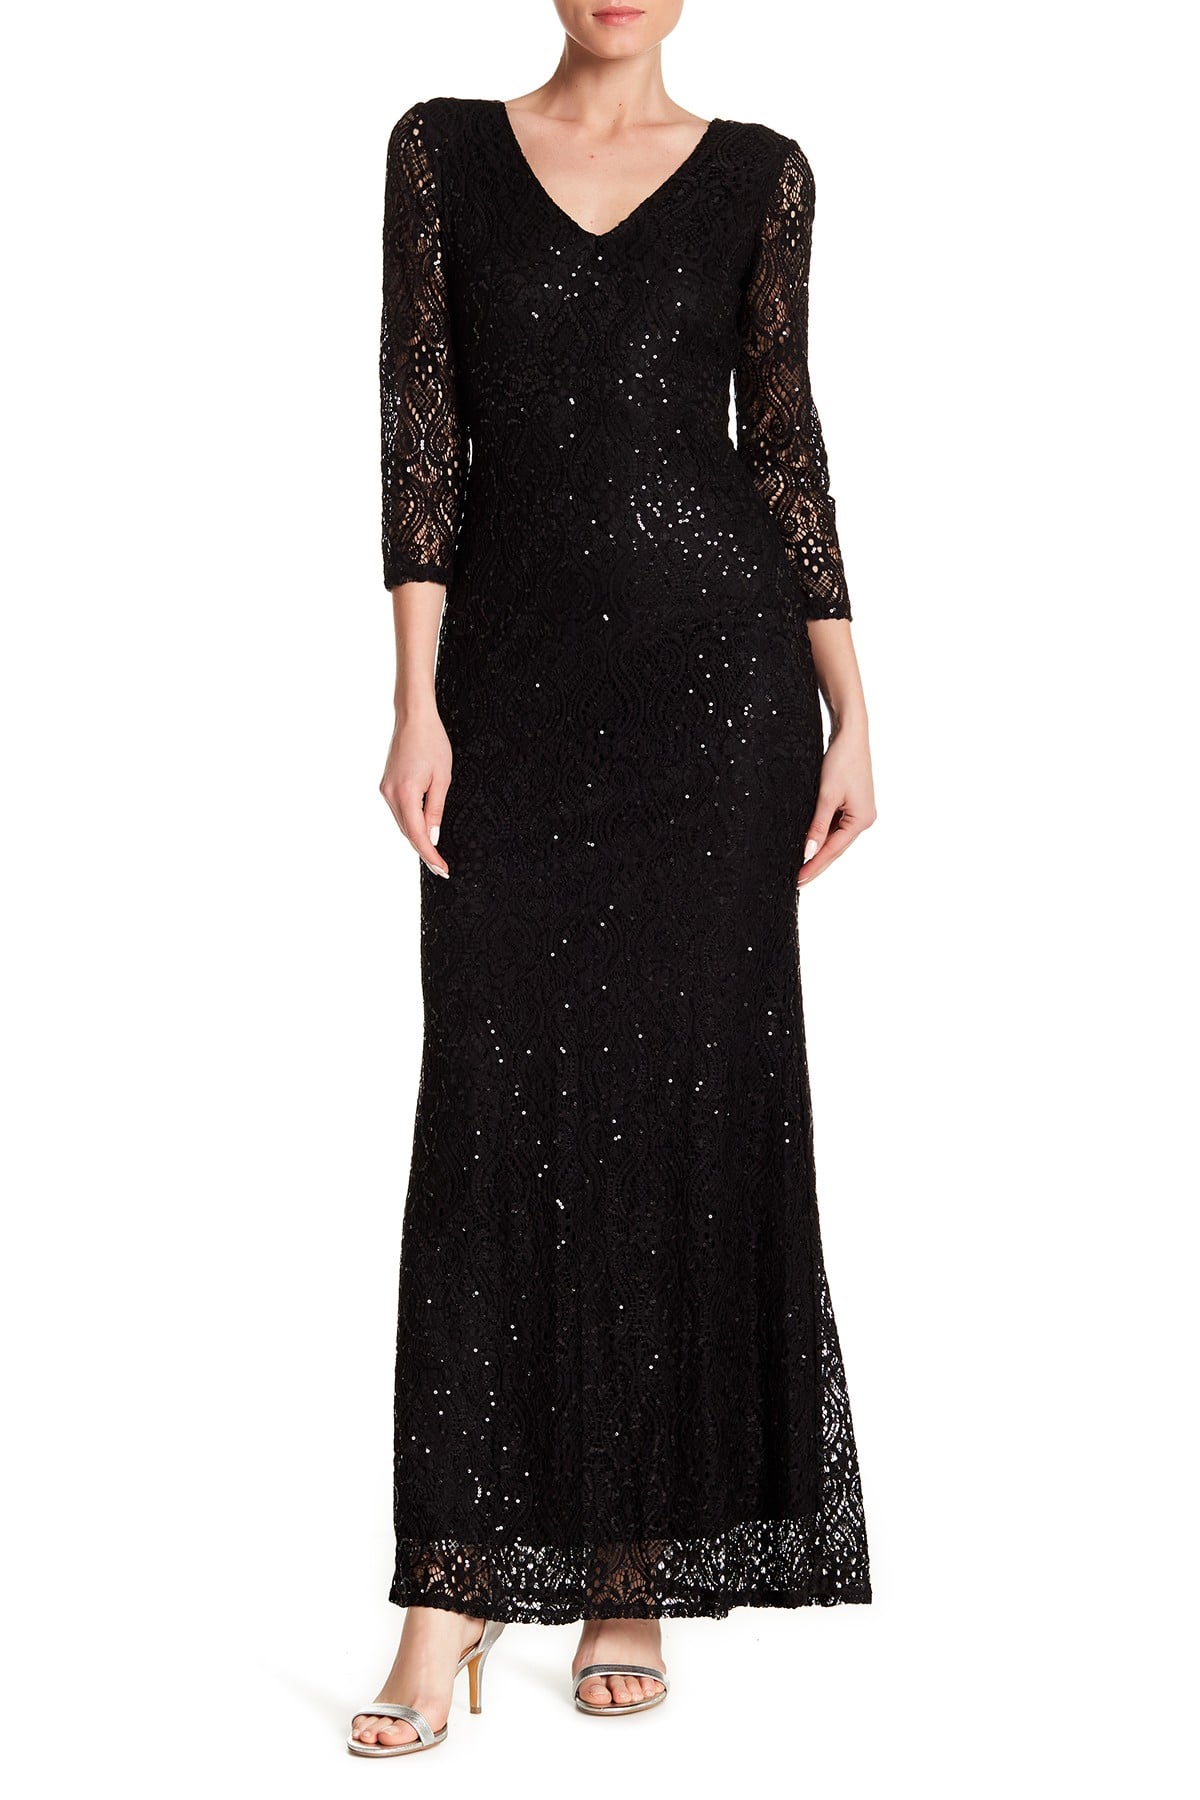 15b476f44c3a Nordstrom Rack Lace sequin Gown    25.35 - Slickdeals.net